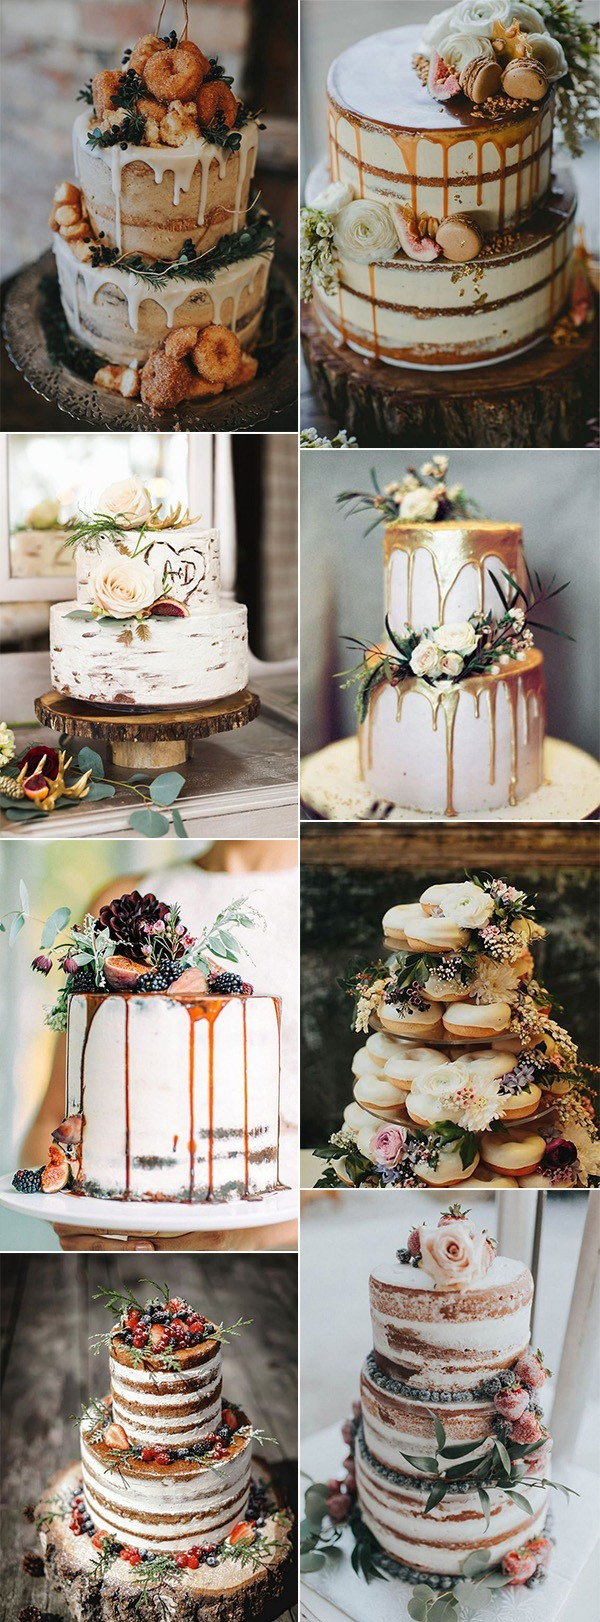 delicious fall wedding cakes